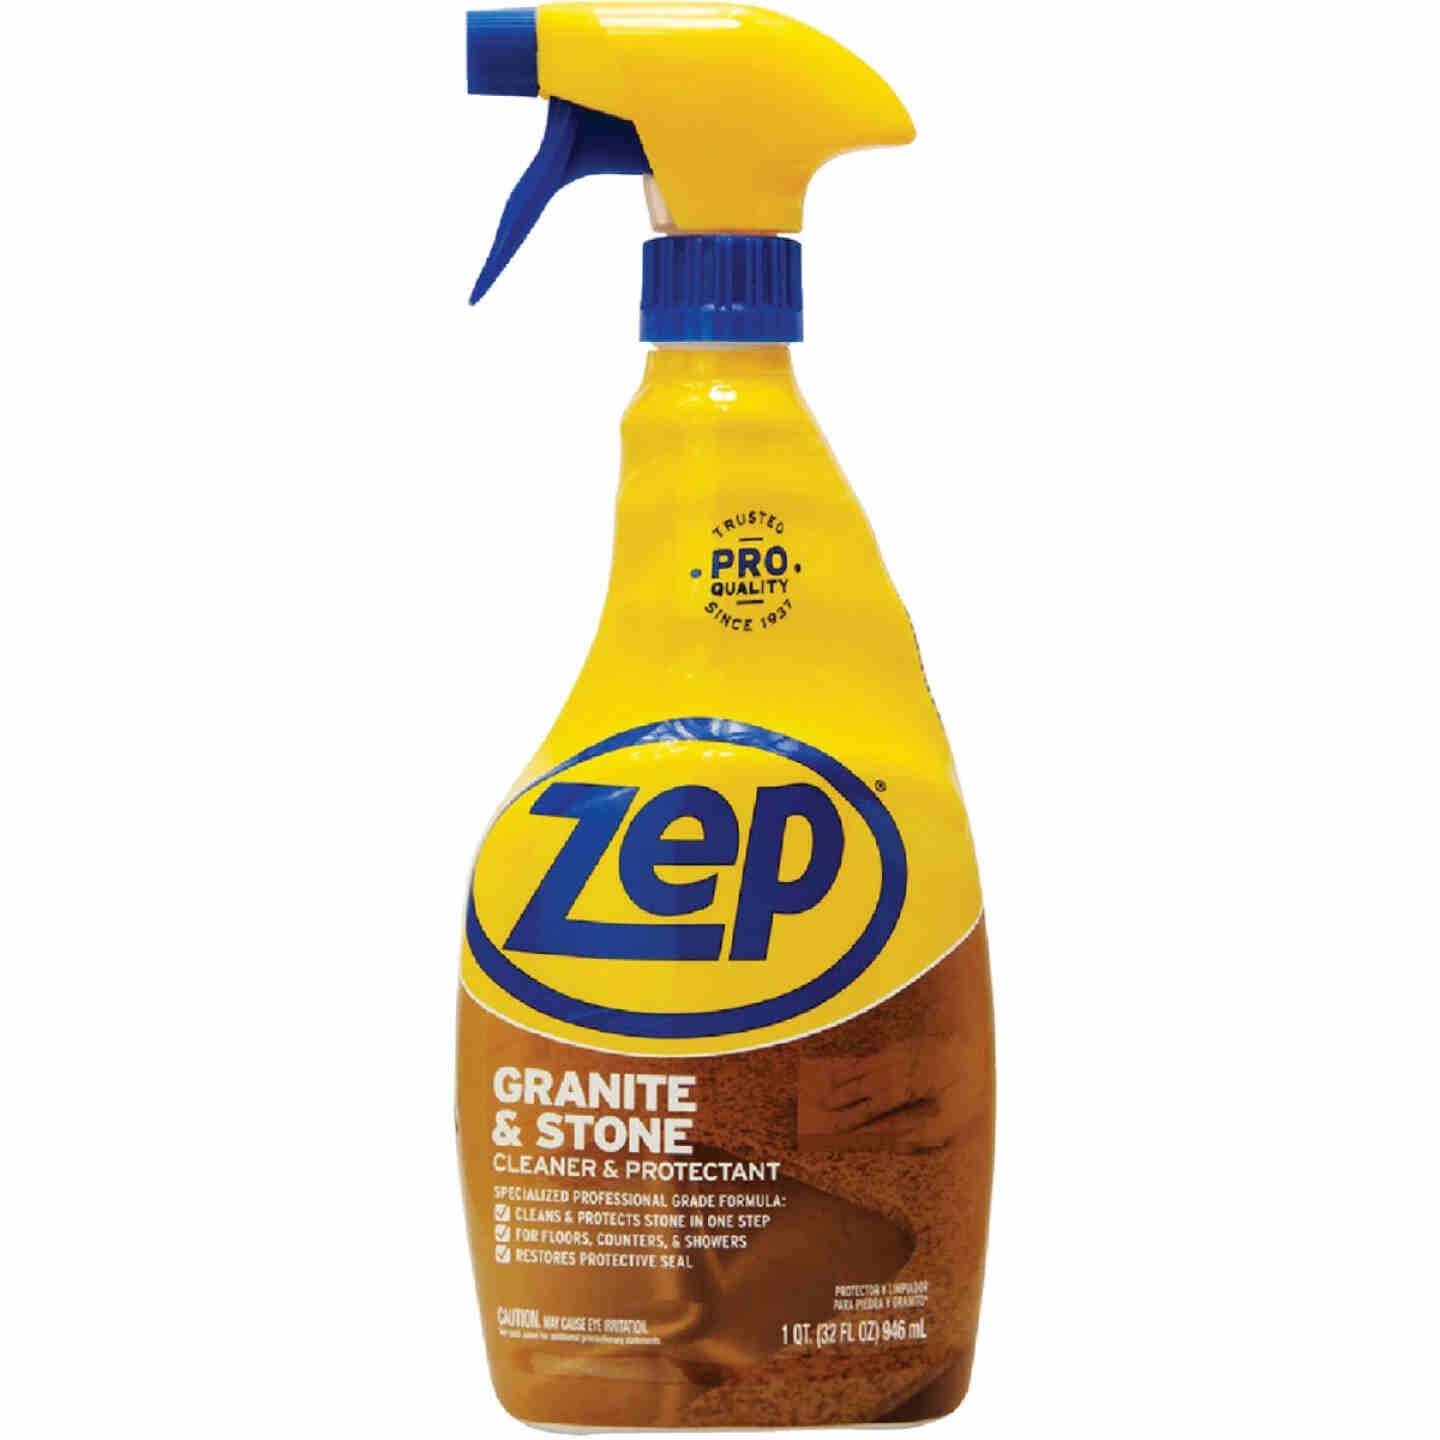 Zep 32 Oz. Granite & Stone Cleaner & Protectant Image 1